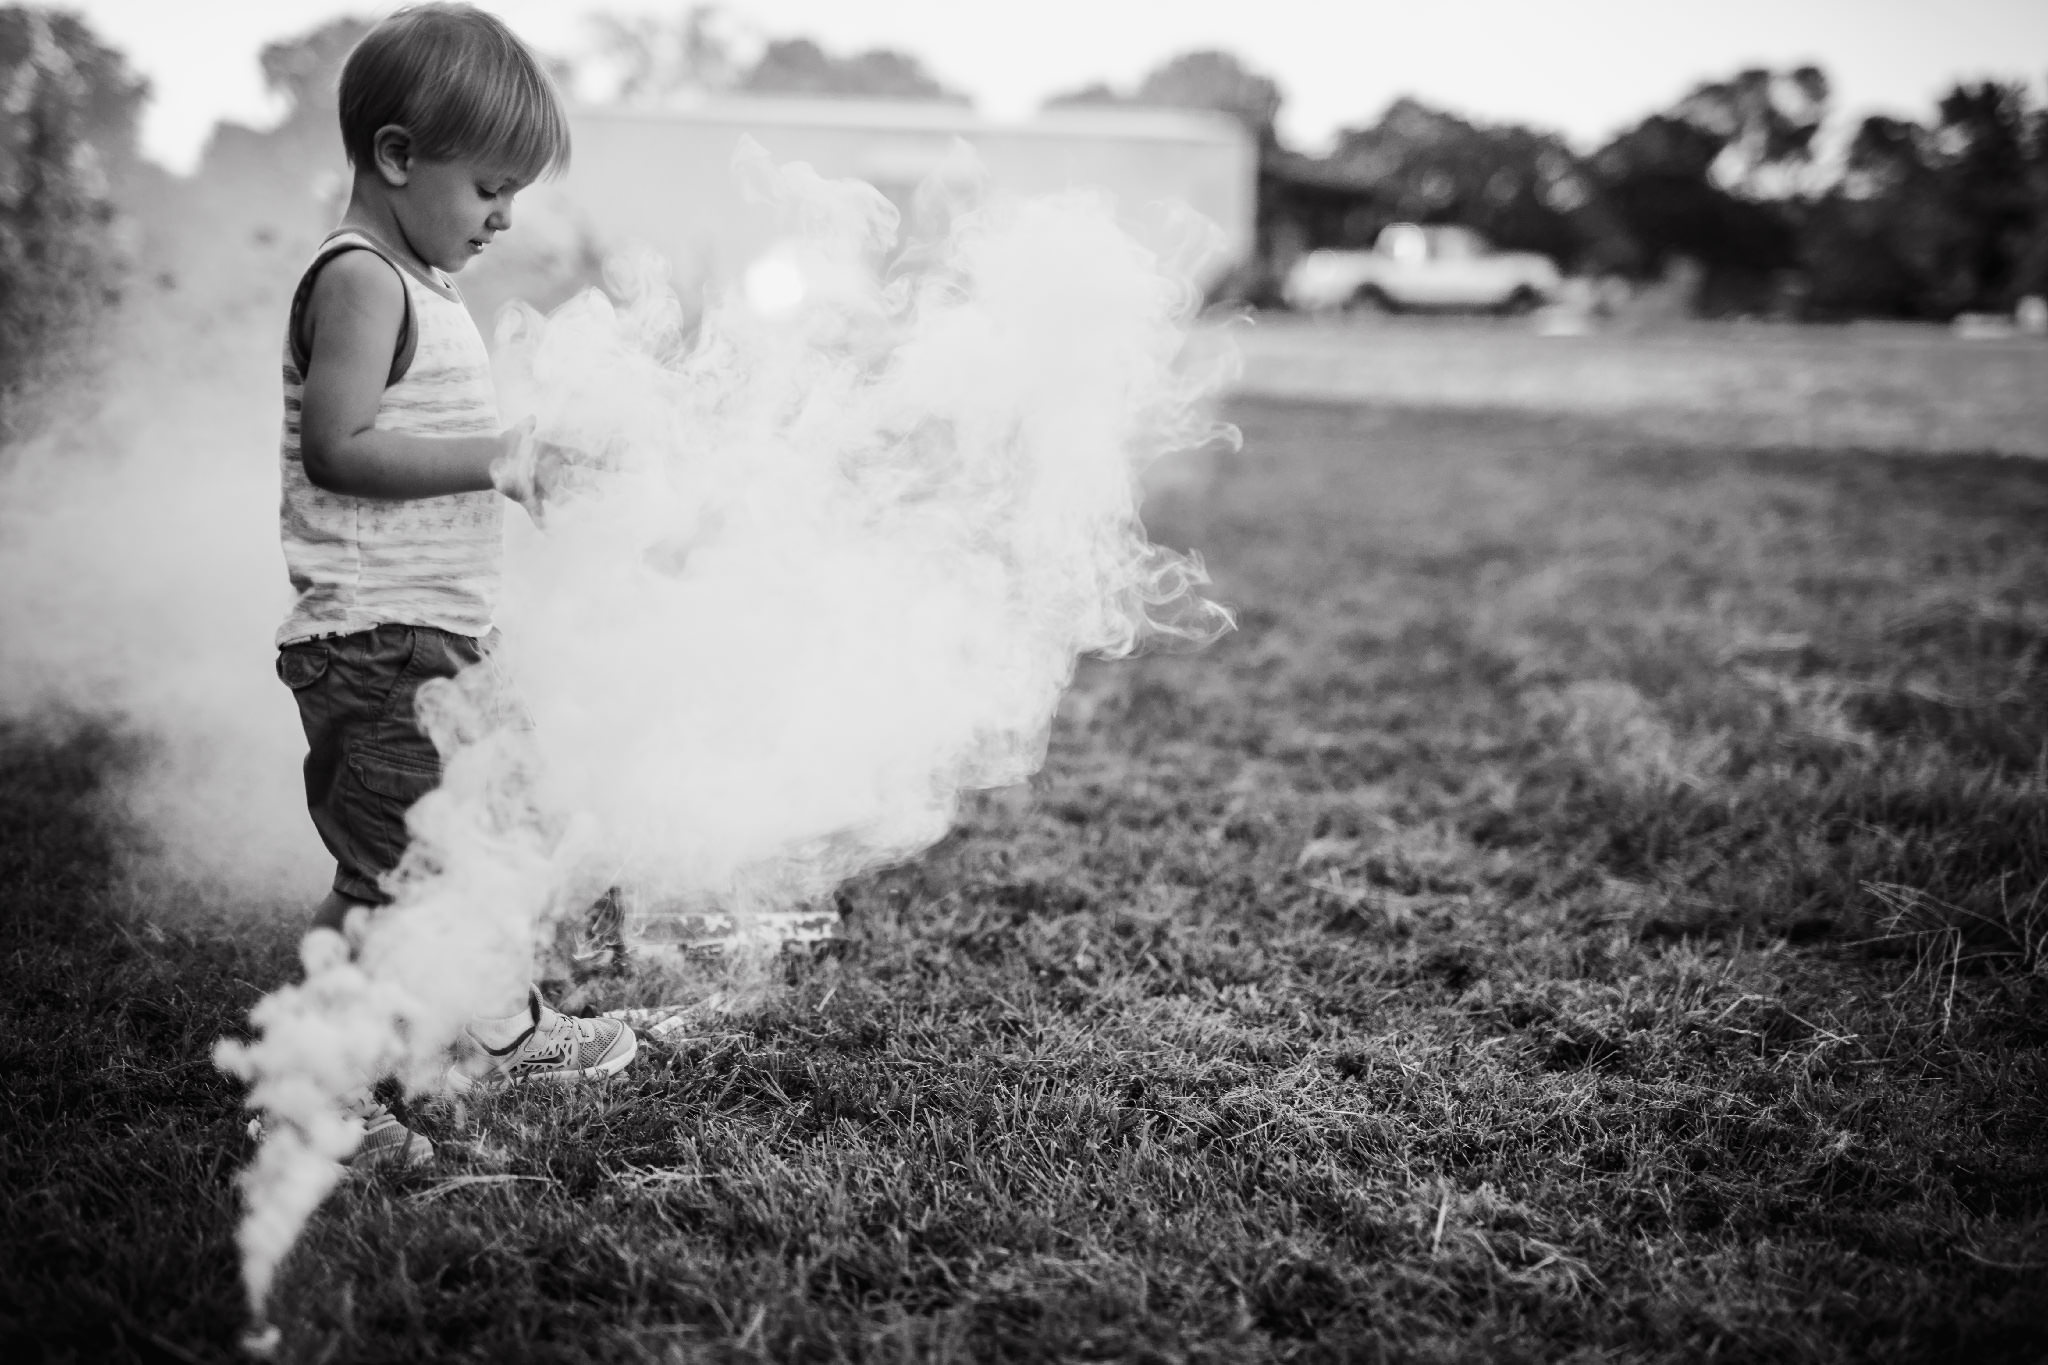 Smoke bombs are the best!